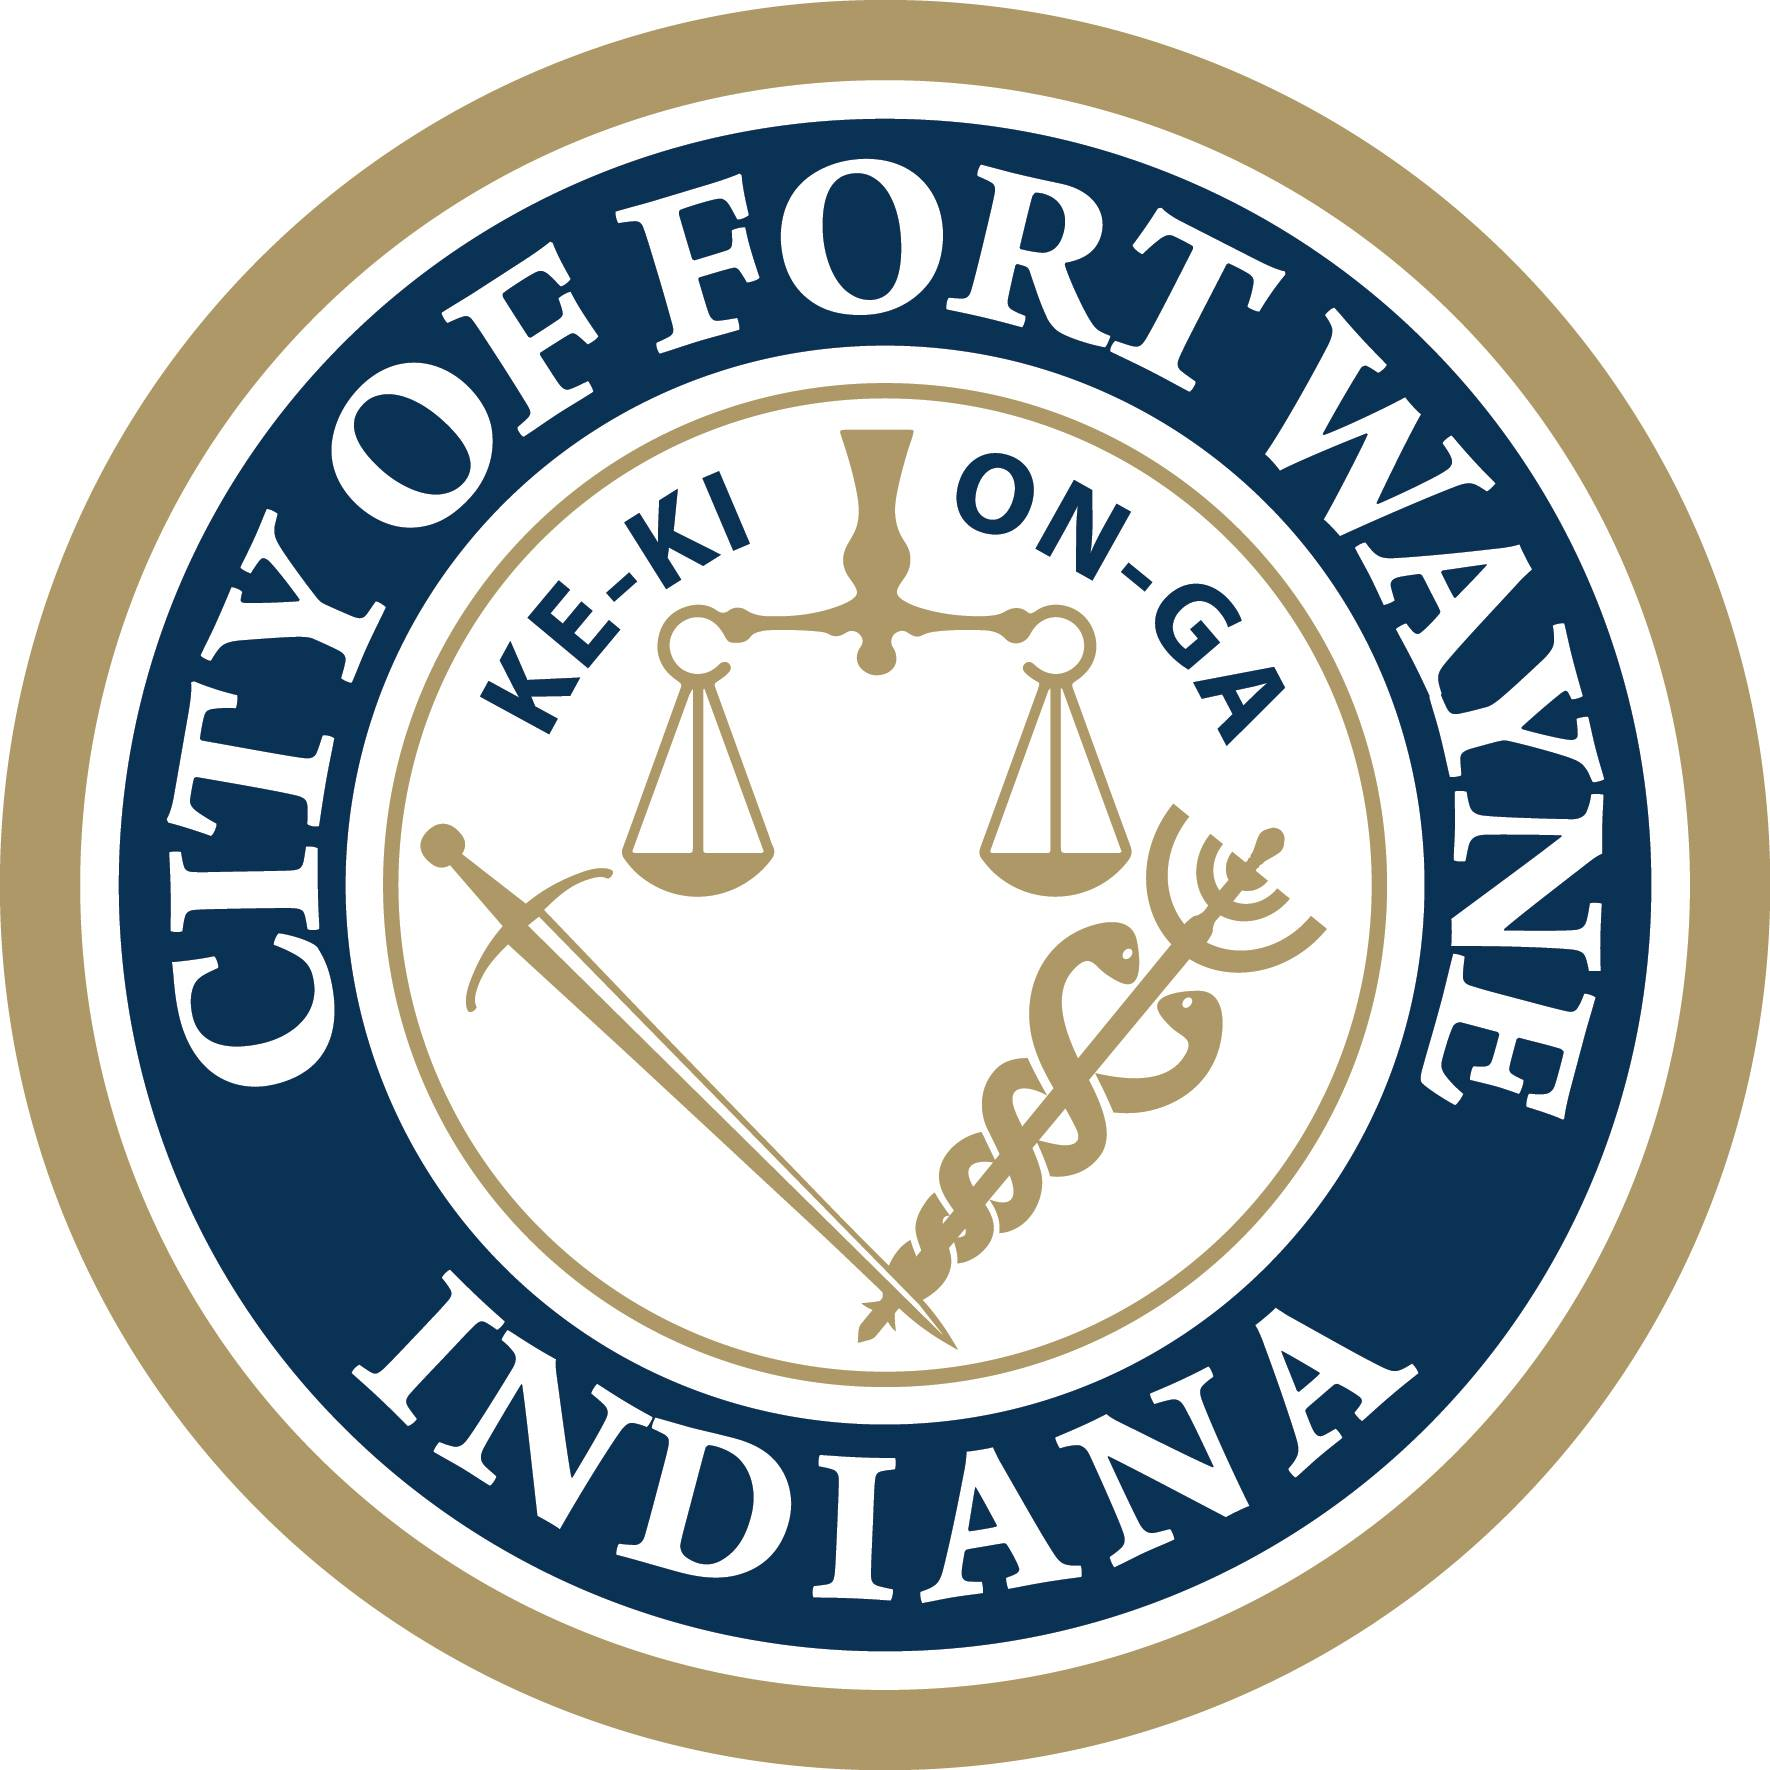 City of Fort Wayne